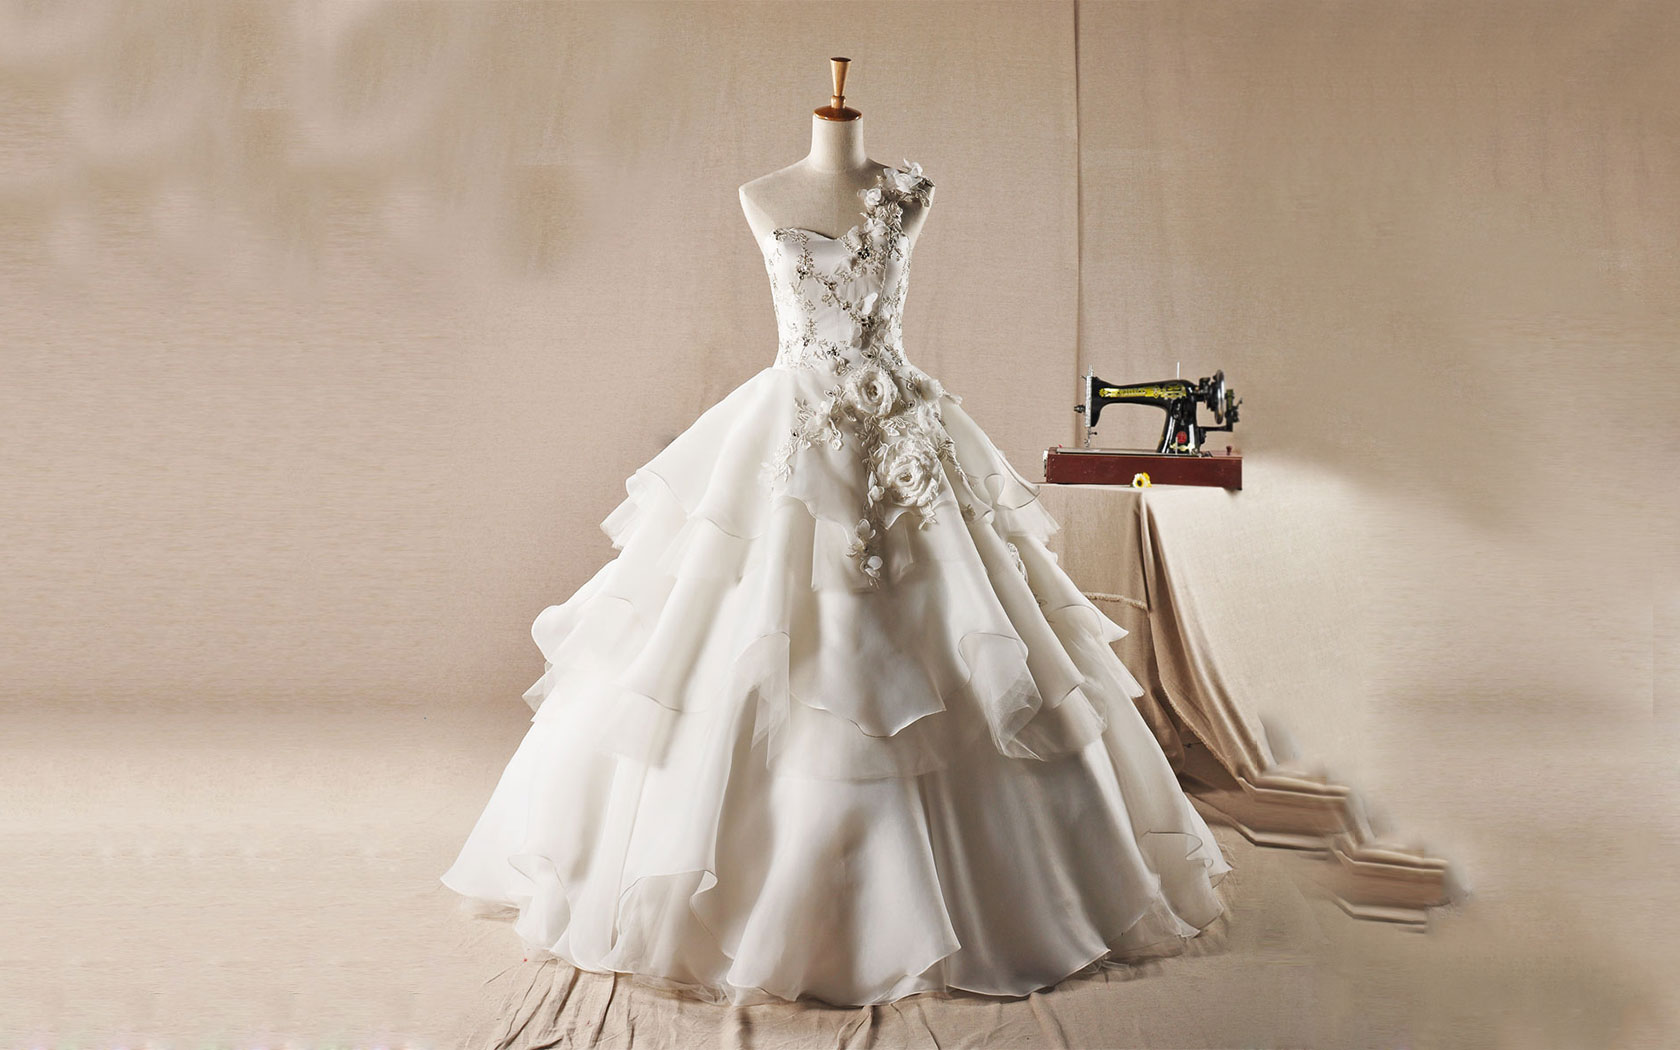 Buy your wedding dress from China